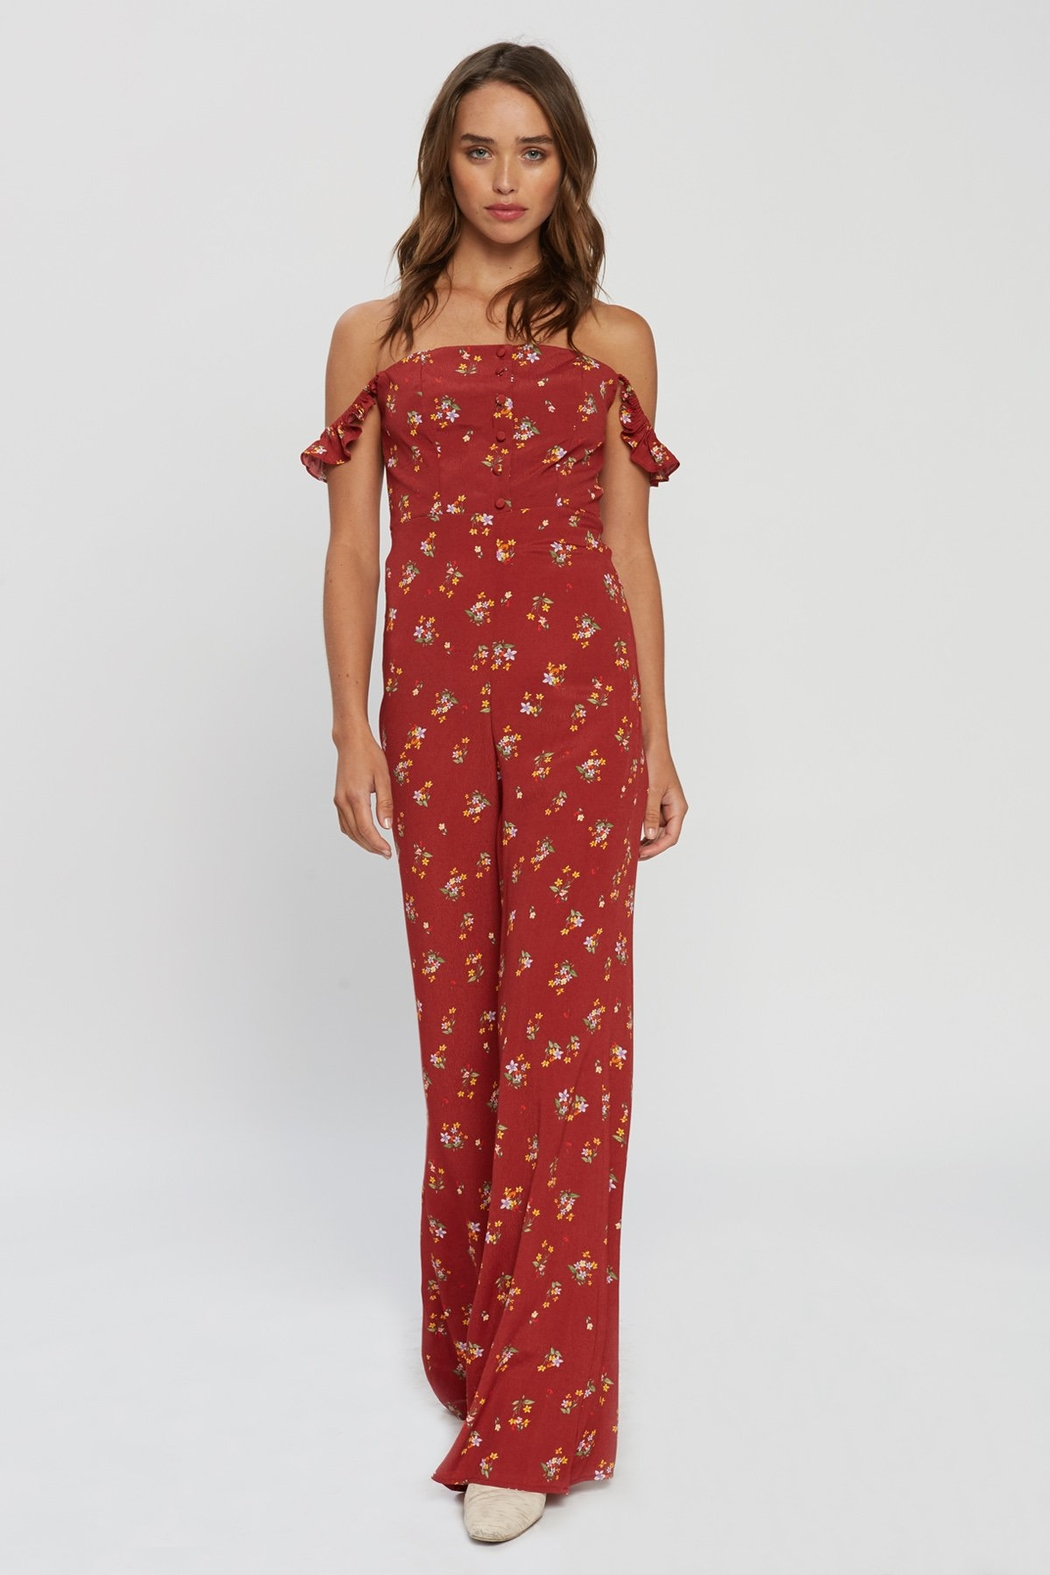 1d1555a07f900 Flynn Skye Bardot Jumpsuit from Texas by y i clothing boutique ...